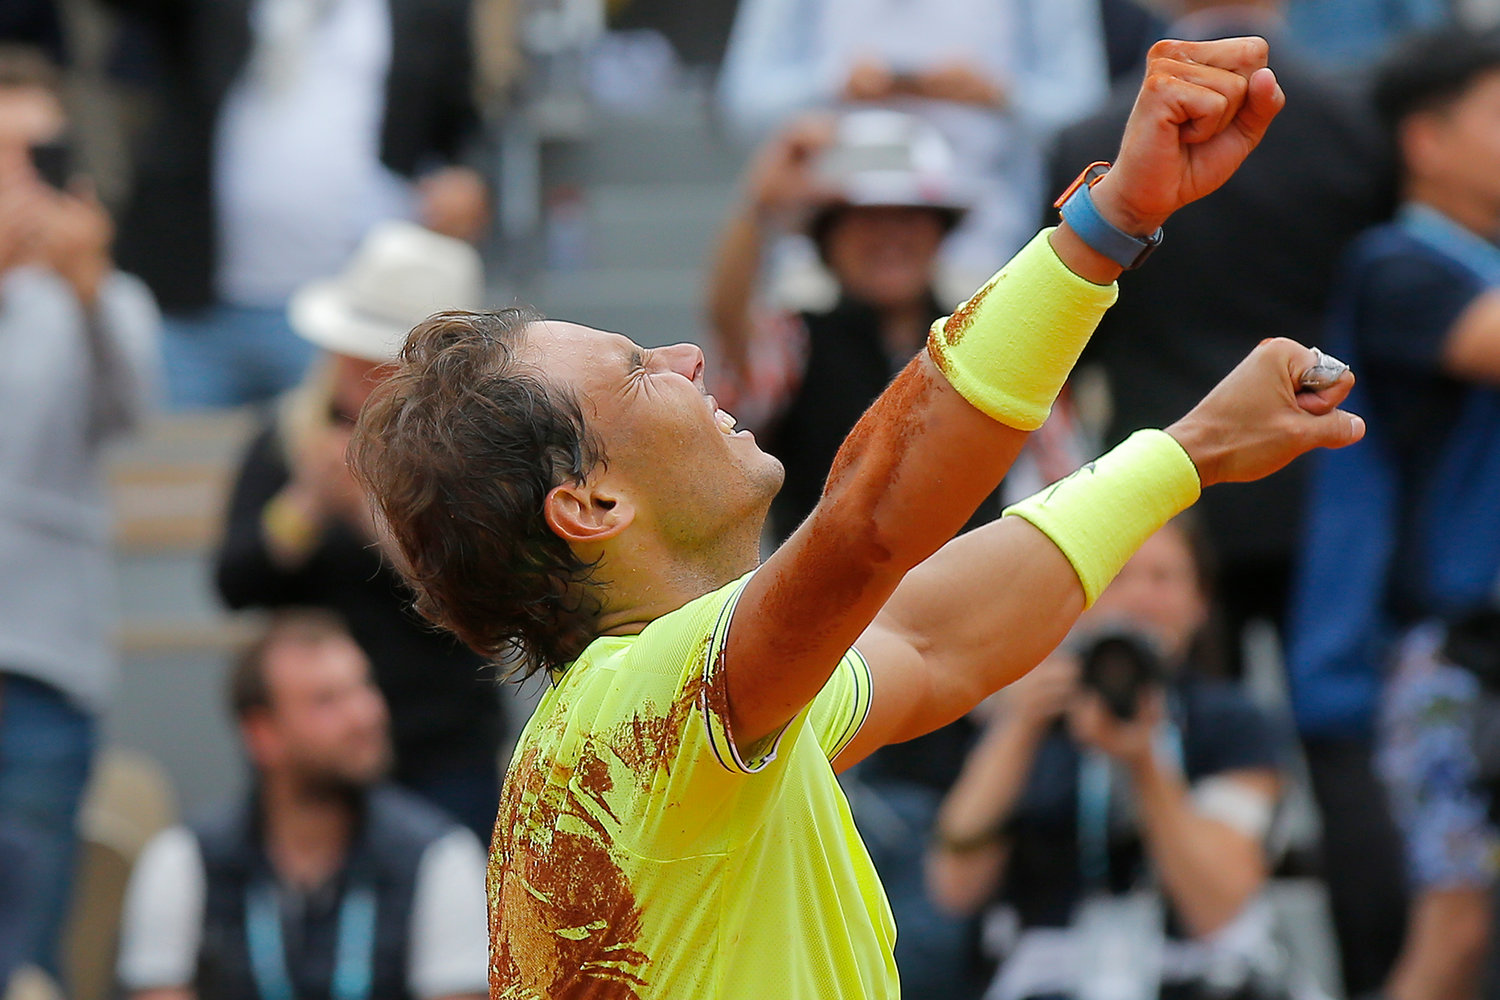 Spain's Rafael Nadal celebrates his record 12th French Open title after winning his men's final match against Austria's Dominic Thiem in four sets, 6-3, 5-7, 6-1, 6-1, at the Roland Garros stadium in Paris, Sunday.